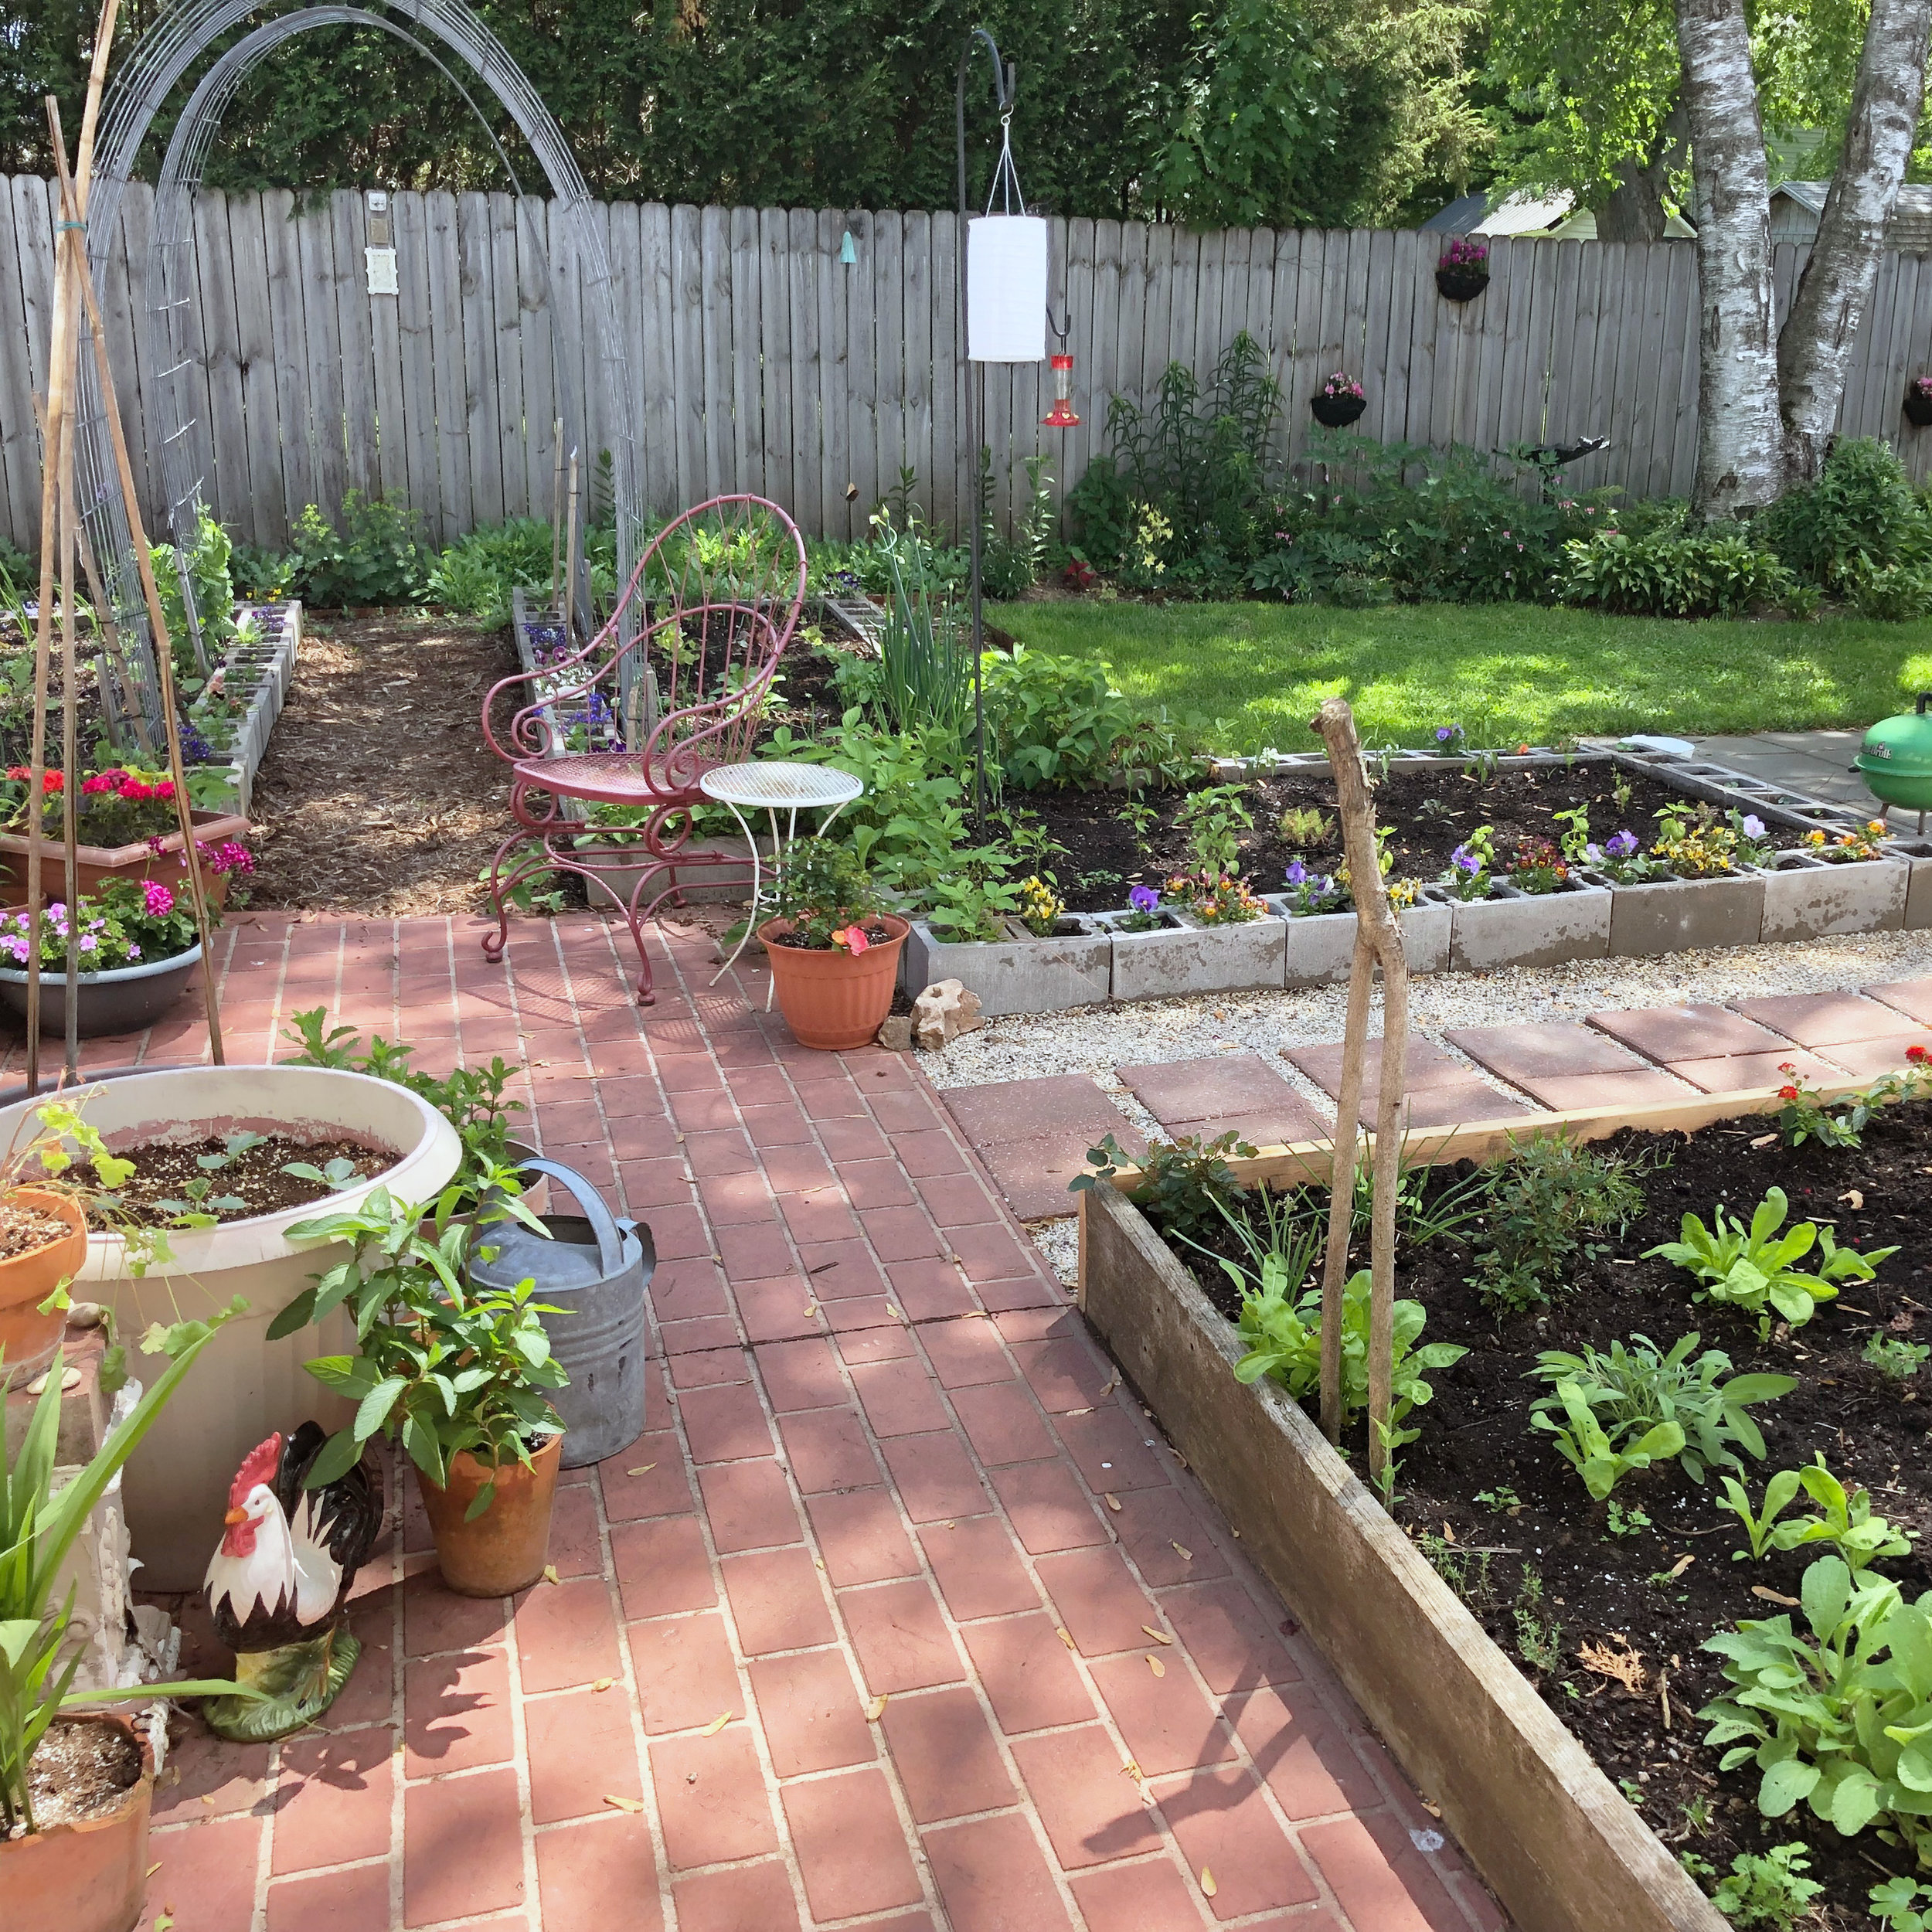 We've Been Working On Lots of Projects Including Extending the Raised Beds and the Path From Patio to Patio